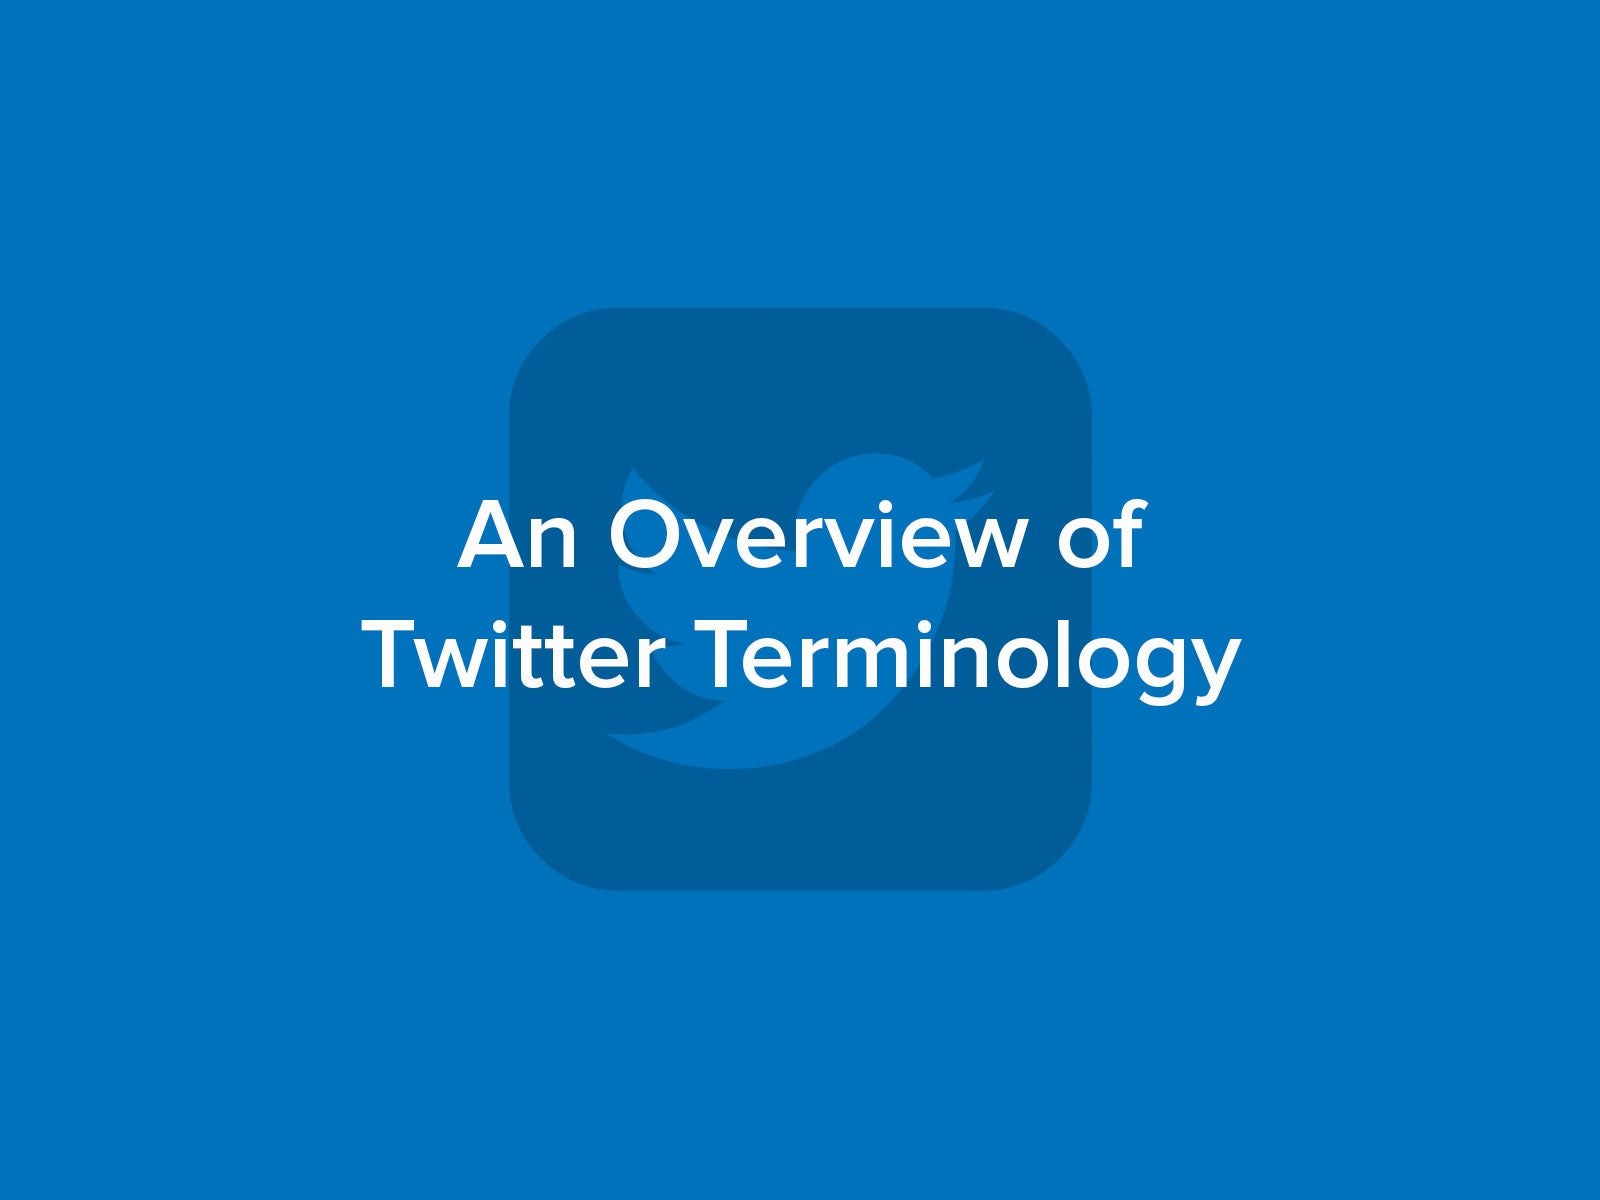 Overview of Twitter Terminology